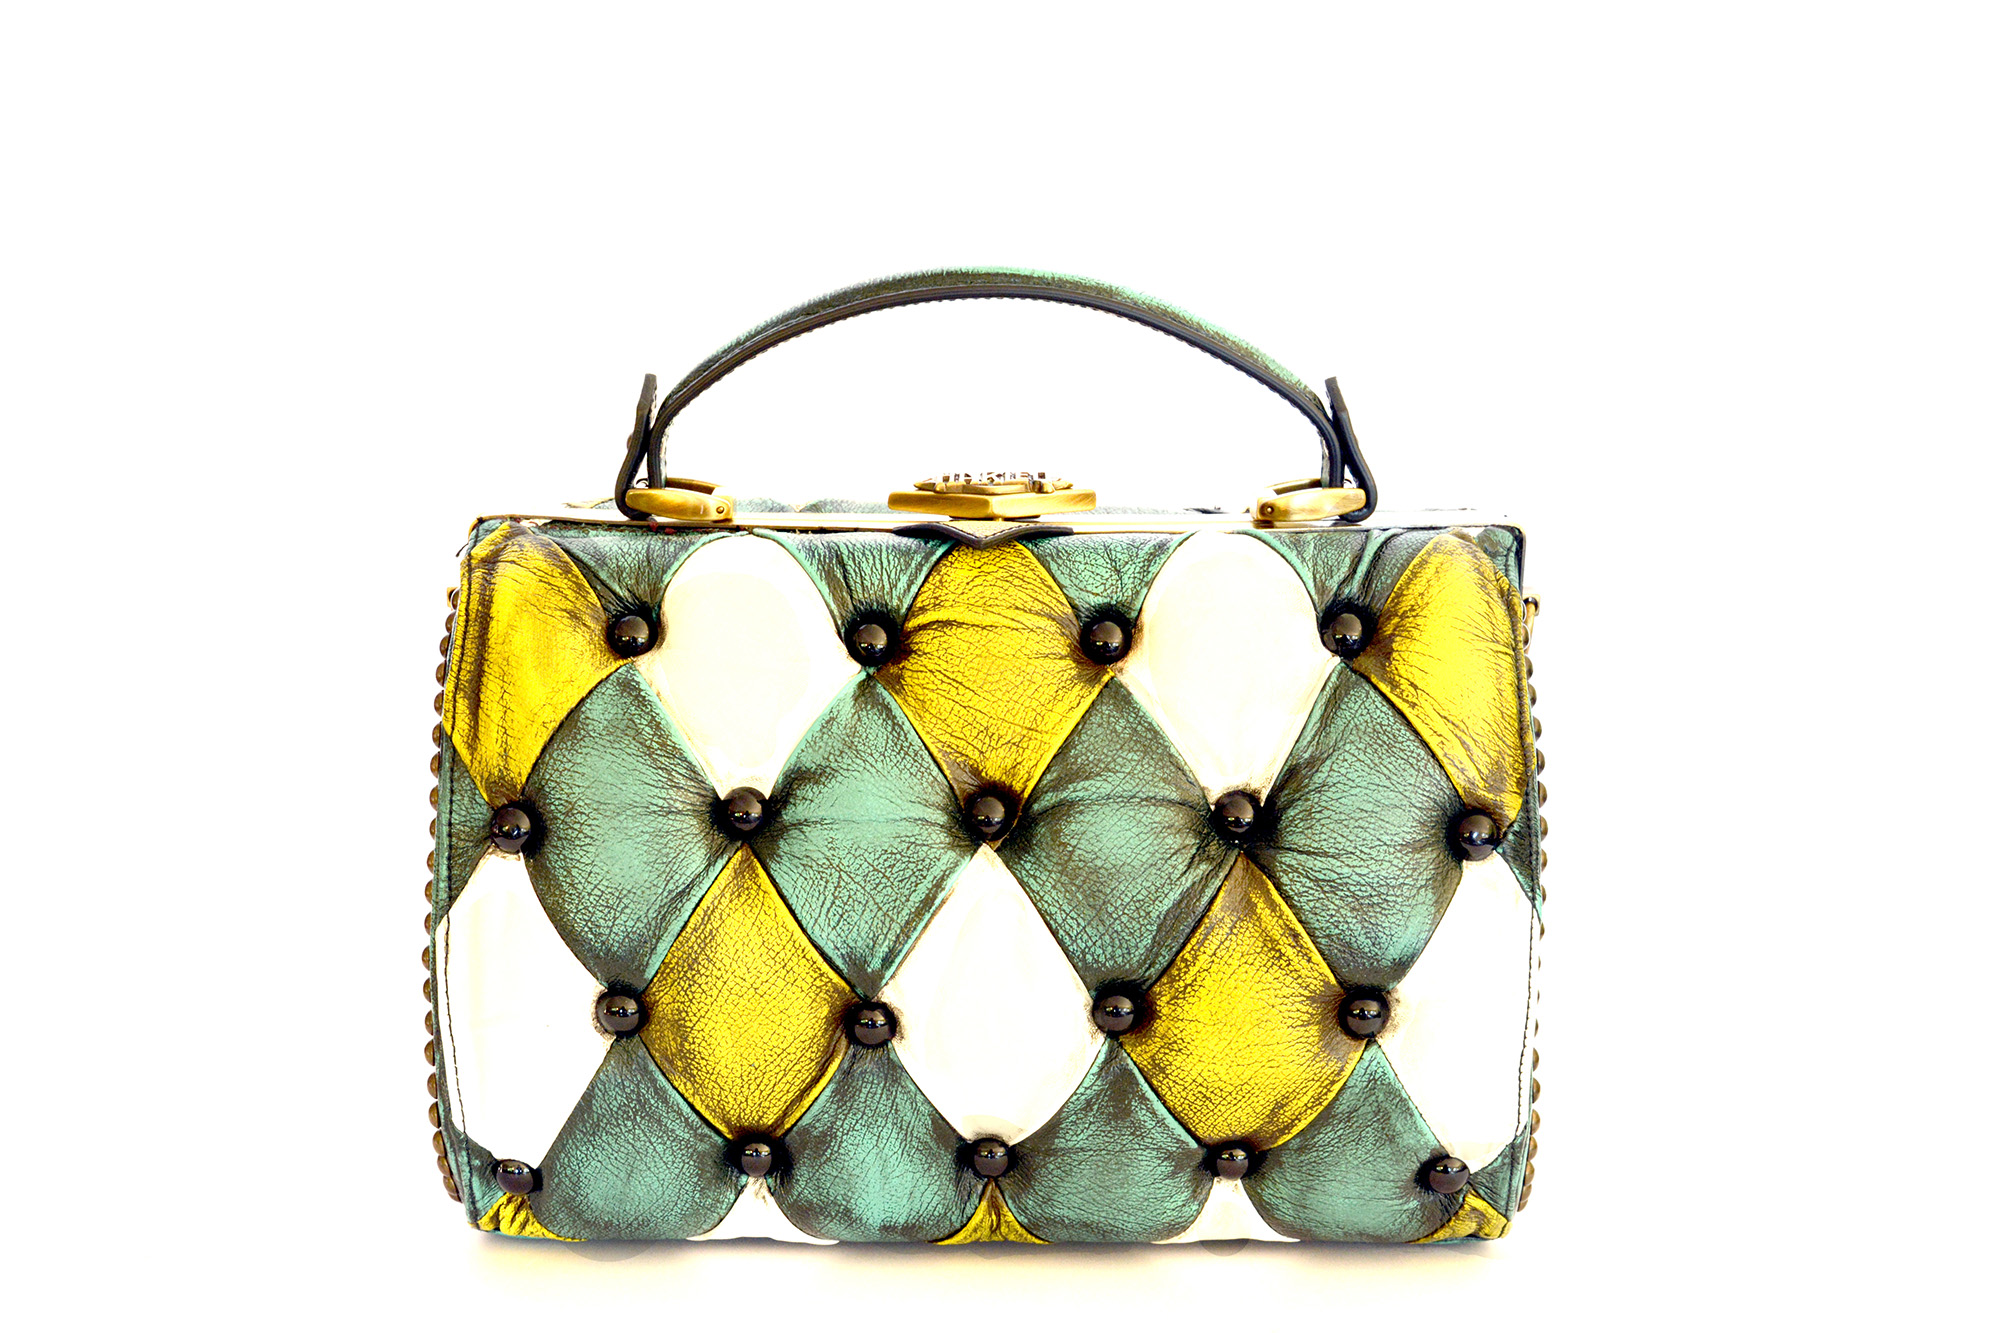 harleq-bag-turquoise-yellow-vintage-leathers